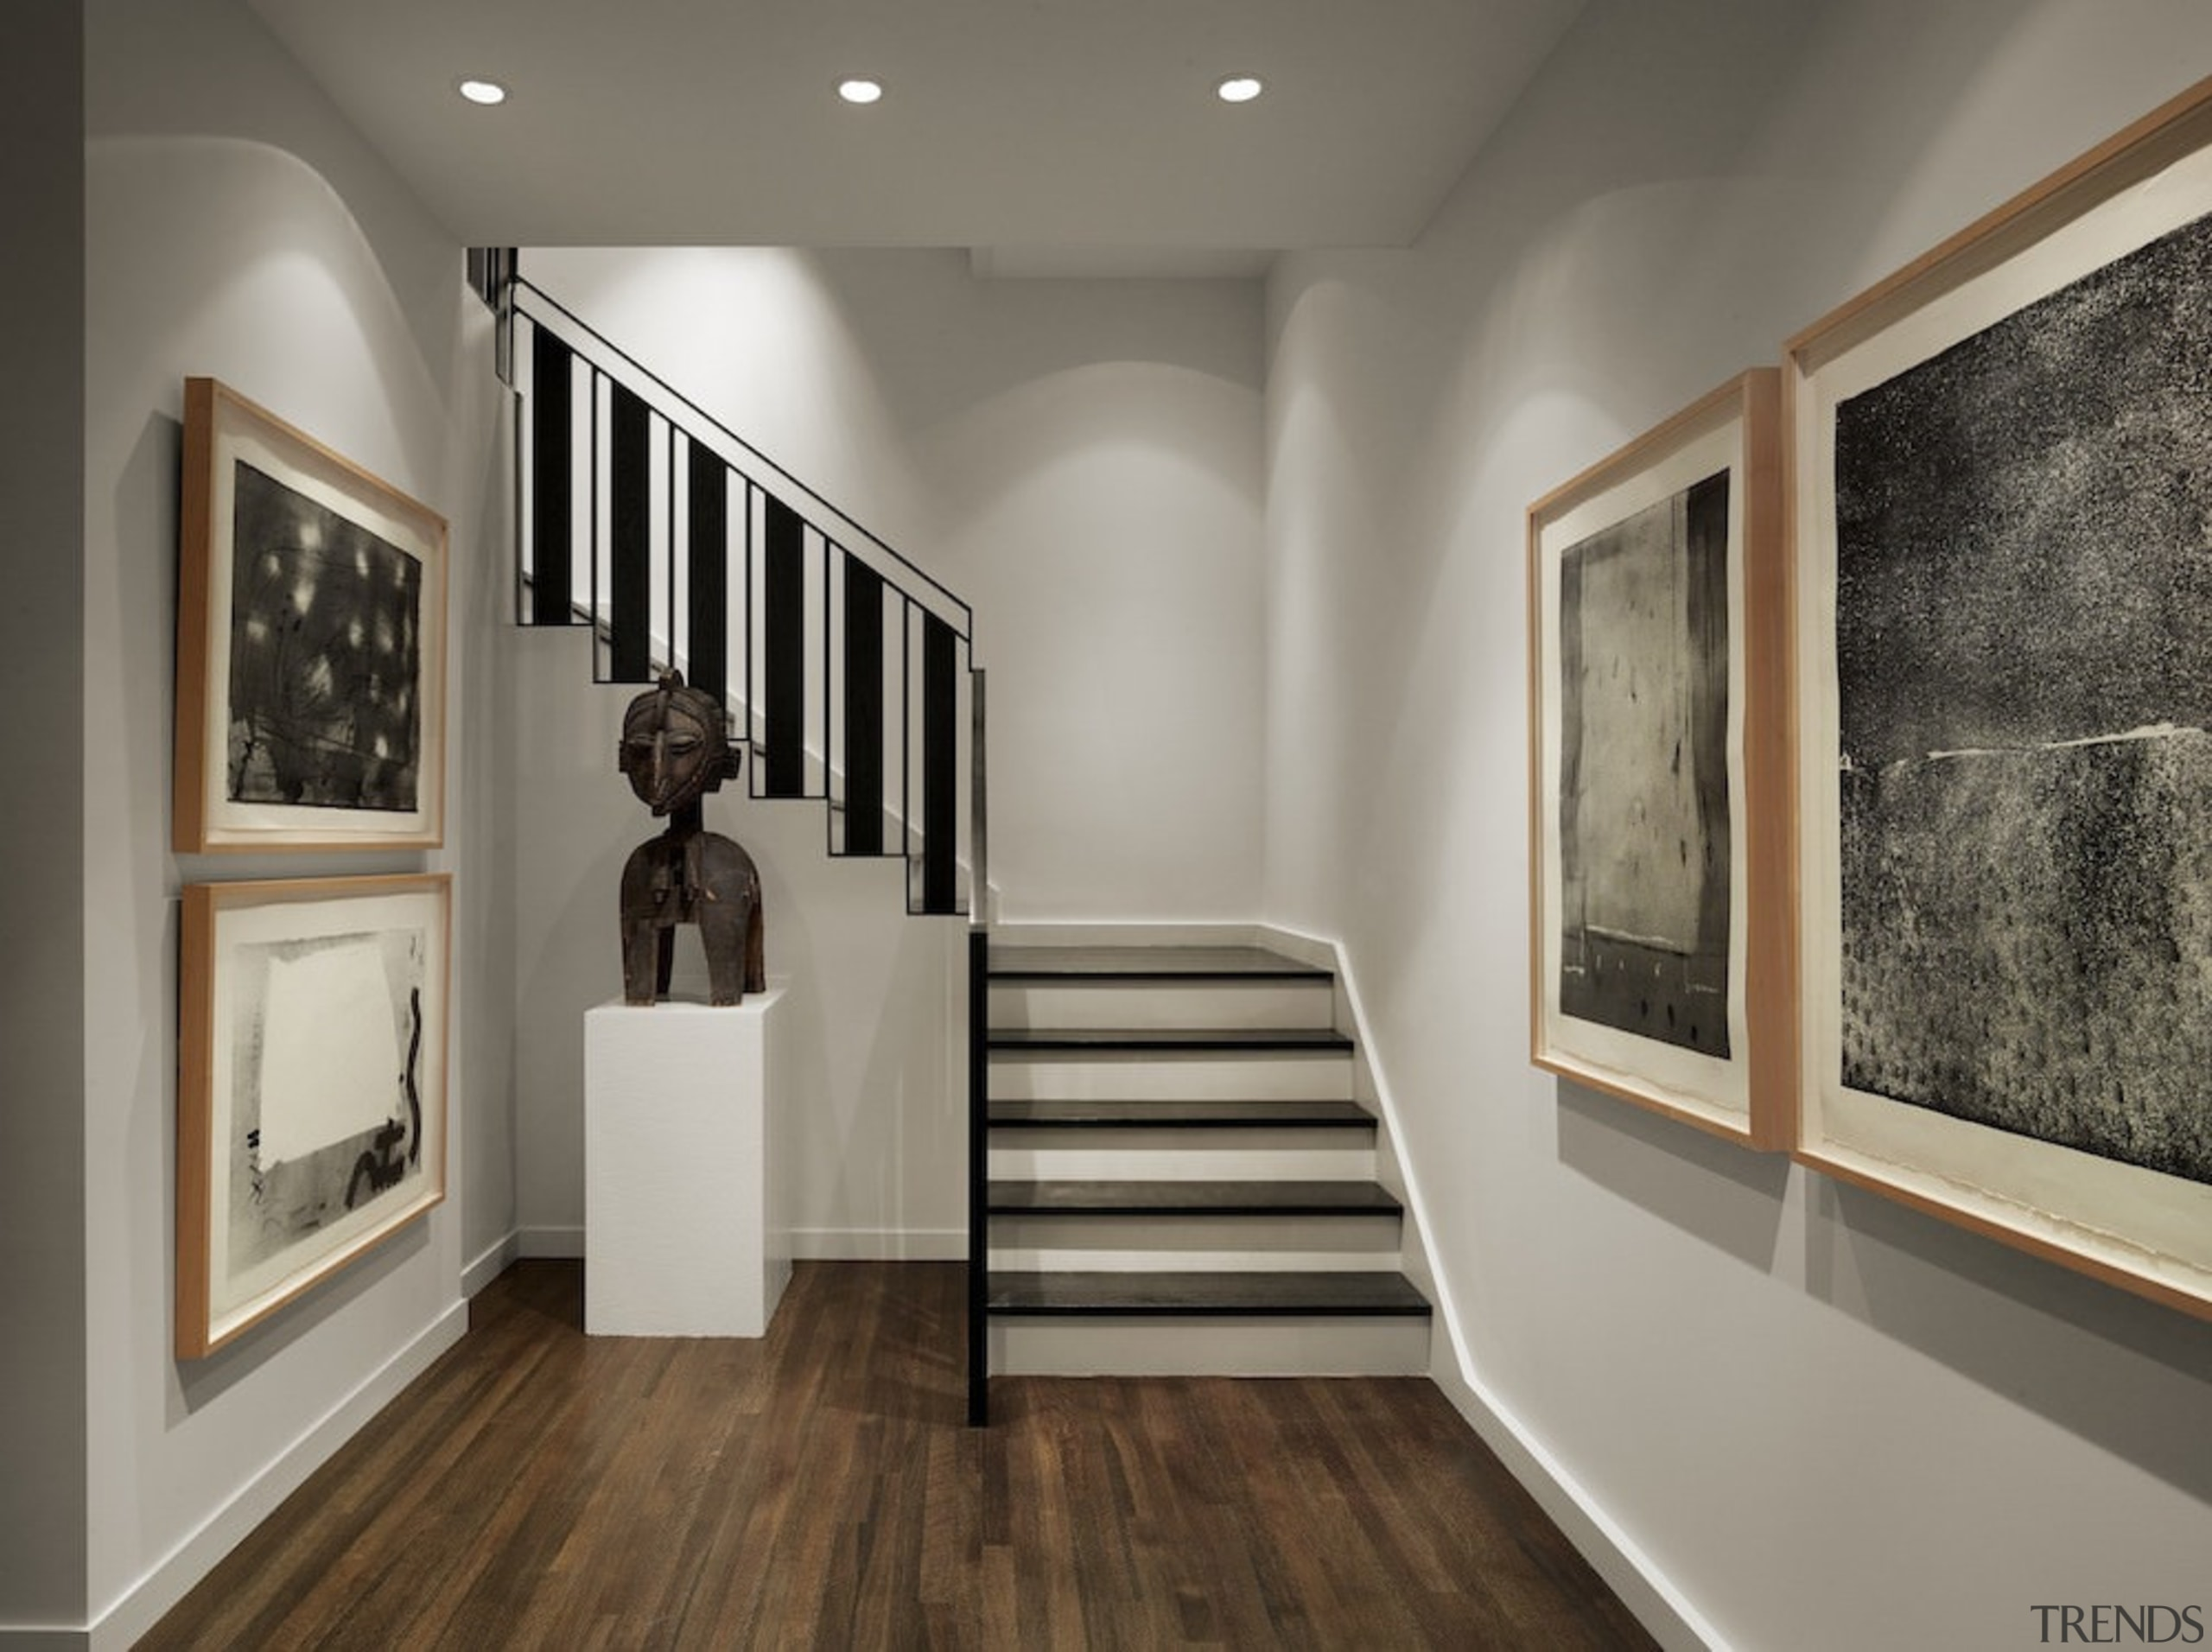 More art gallery than home? - More art ceiling, exhibition, floor, flooring, interior design, wood flooring, gray